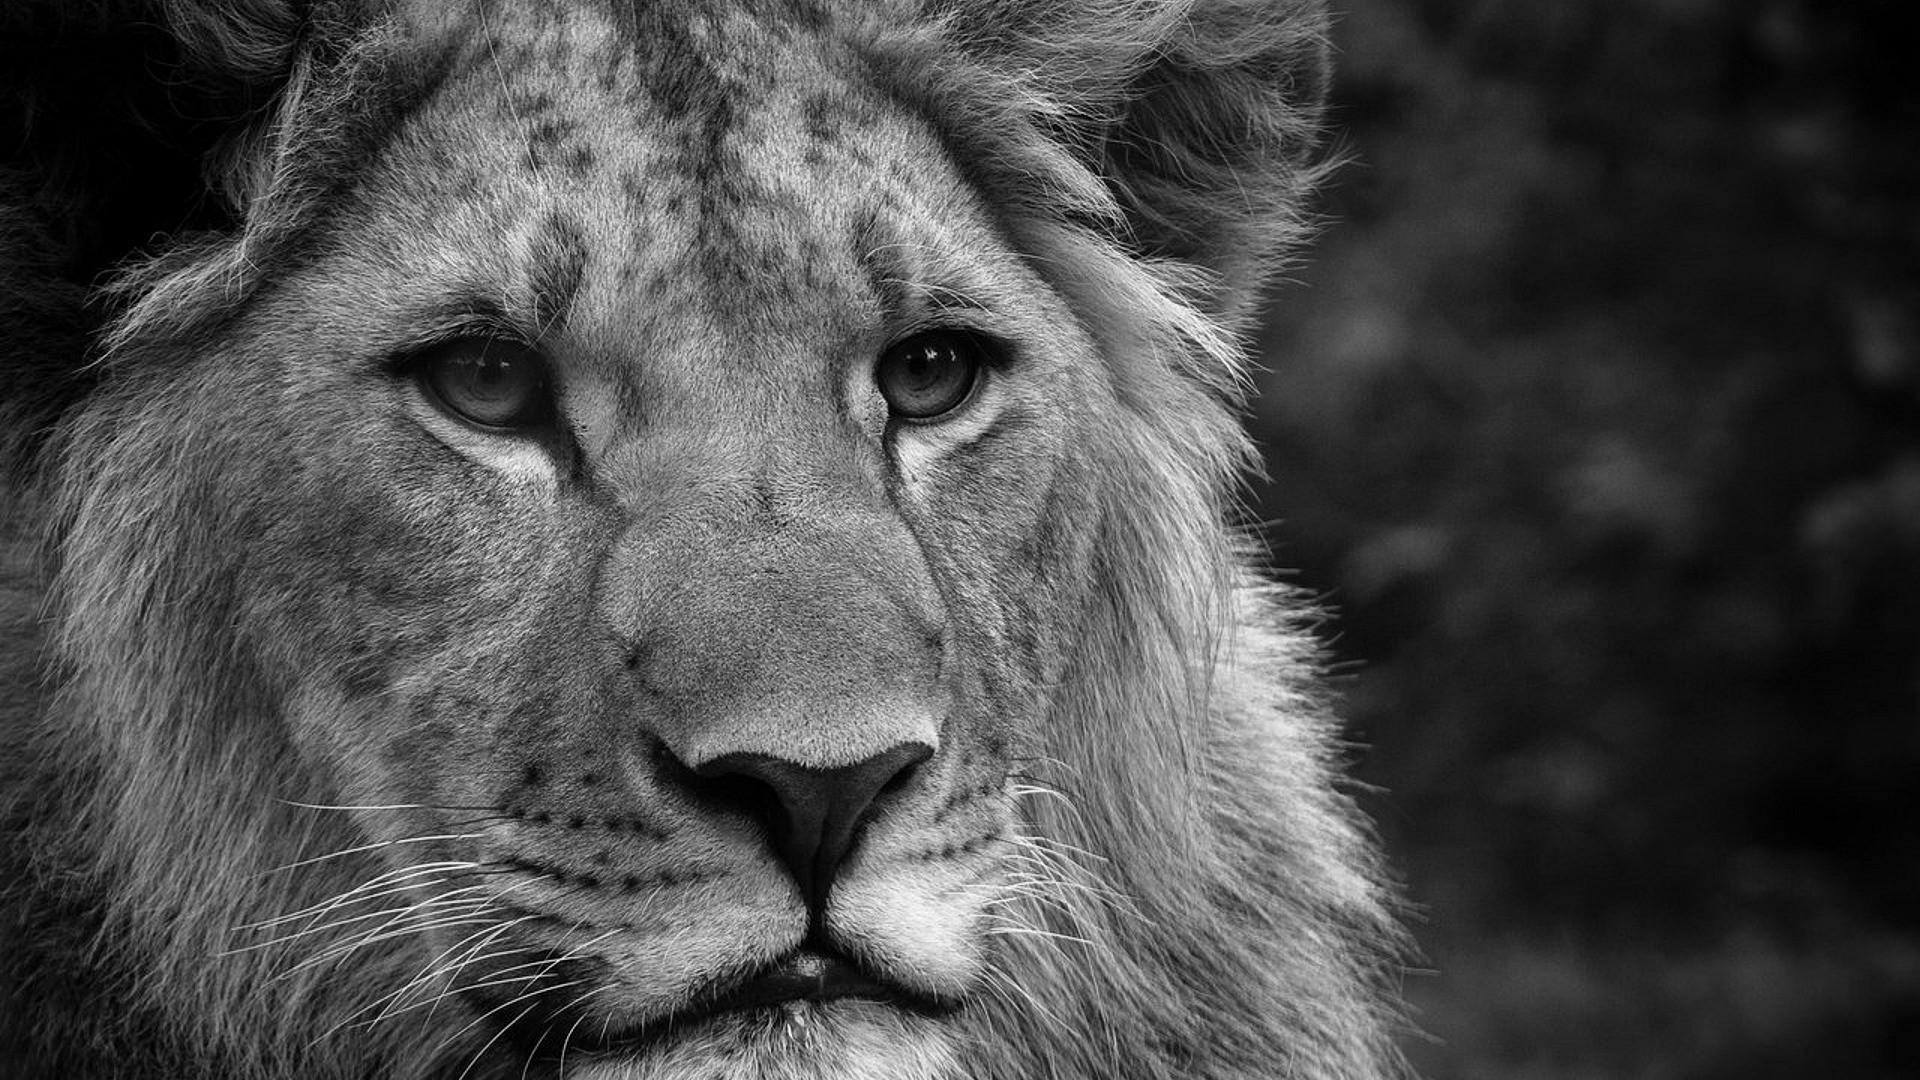 Black And White Lion Wallpapers Wallpaper Cave